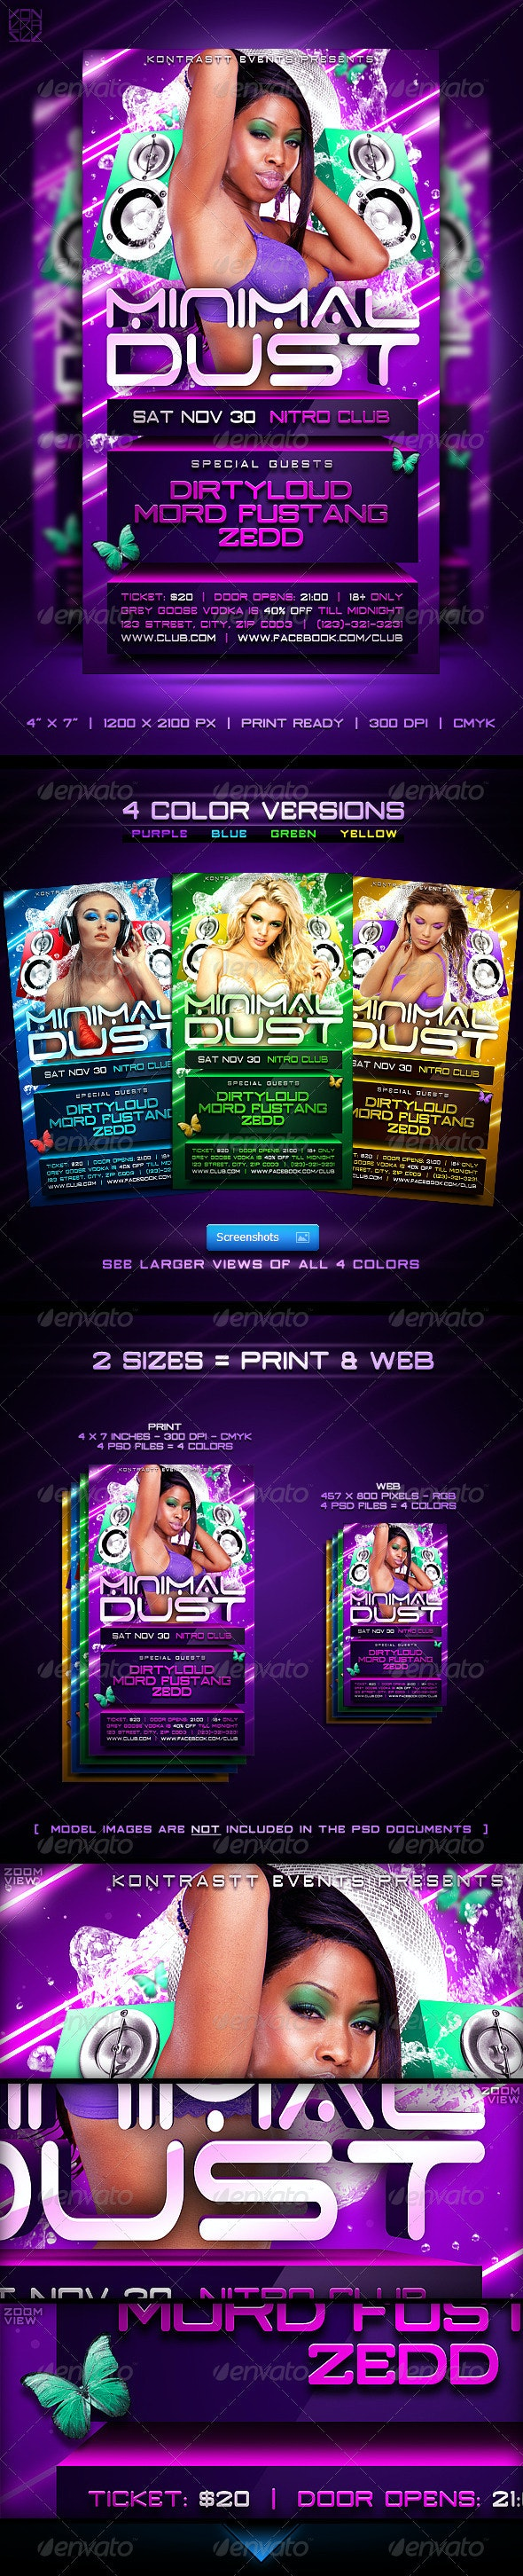 Minimal Dust Flyer // 4 Color Versions in 2 Sizes - Clubs & Parties Events